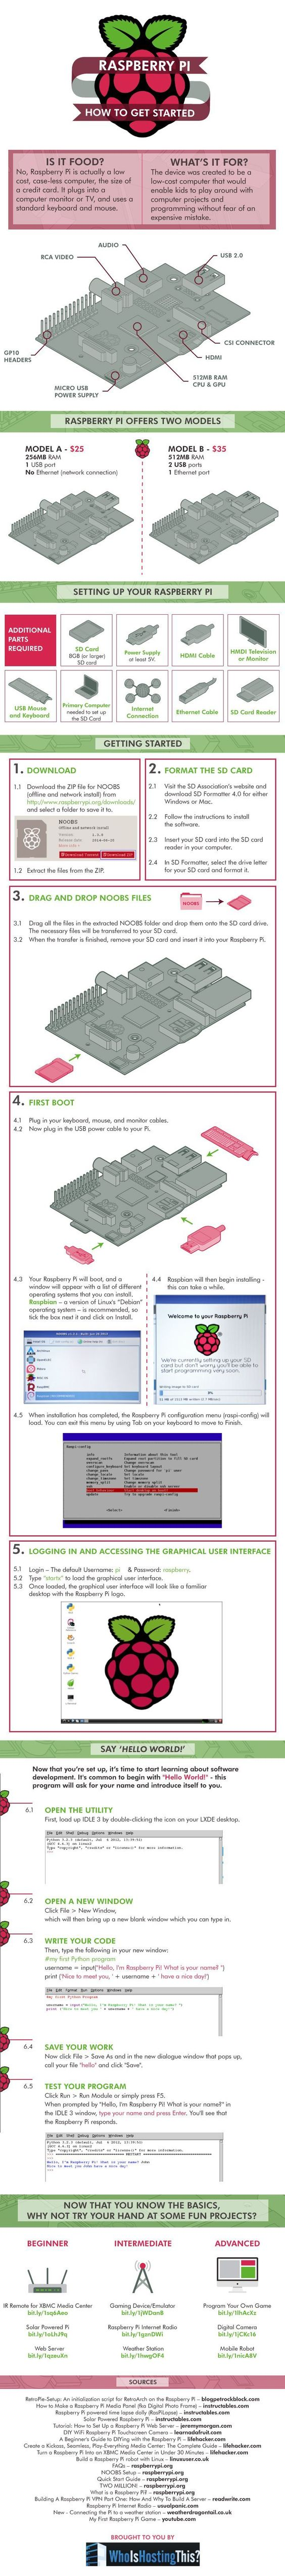 How to Get Started with Raspberry Pi